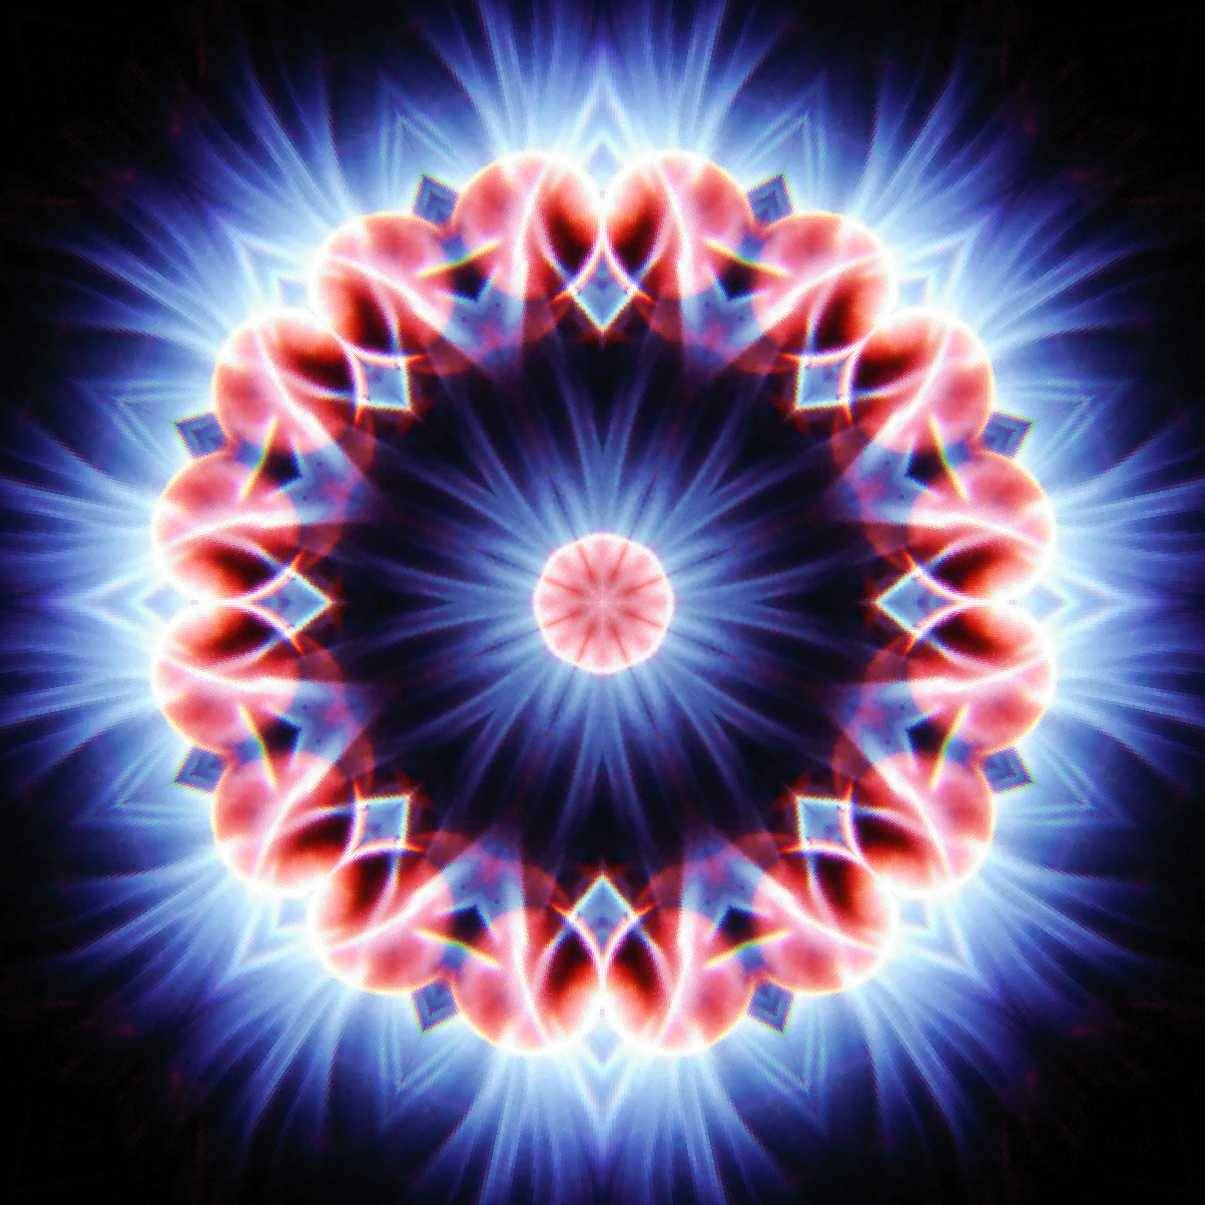 Plasma Kaleidoscope | Flickr - Photo Sharing!